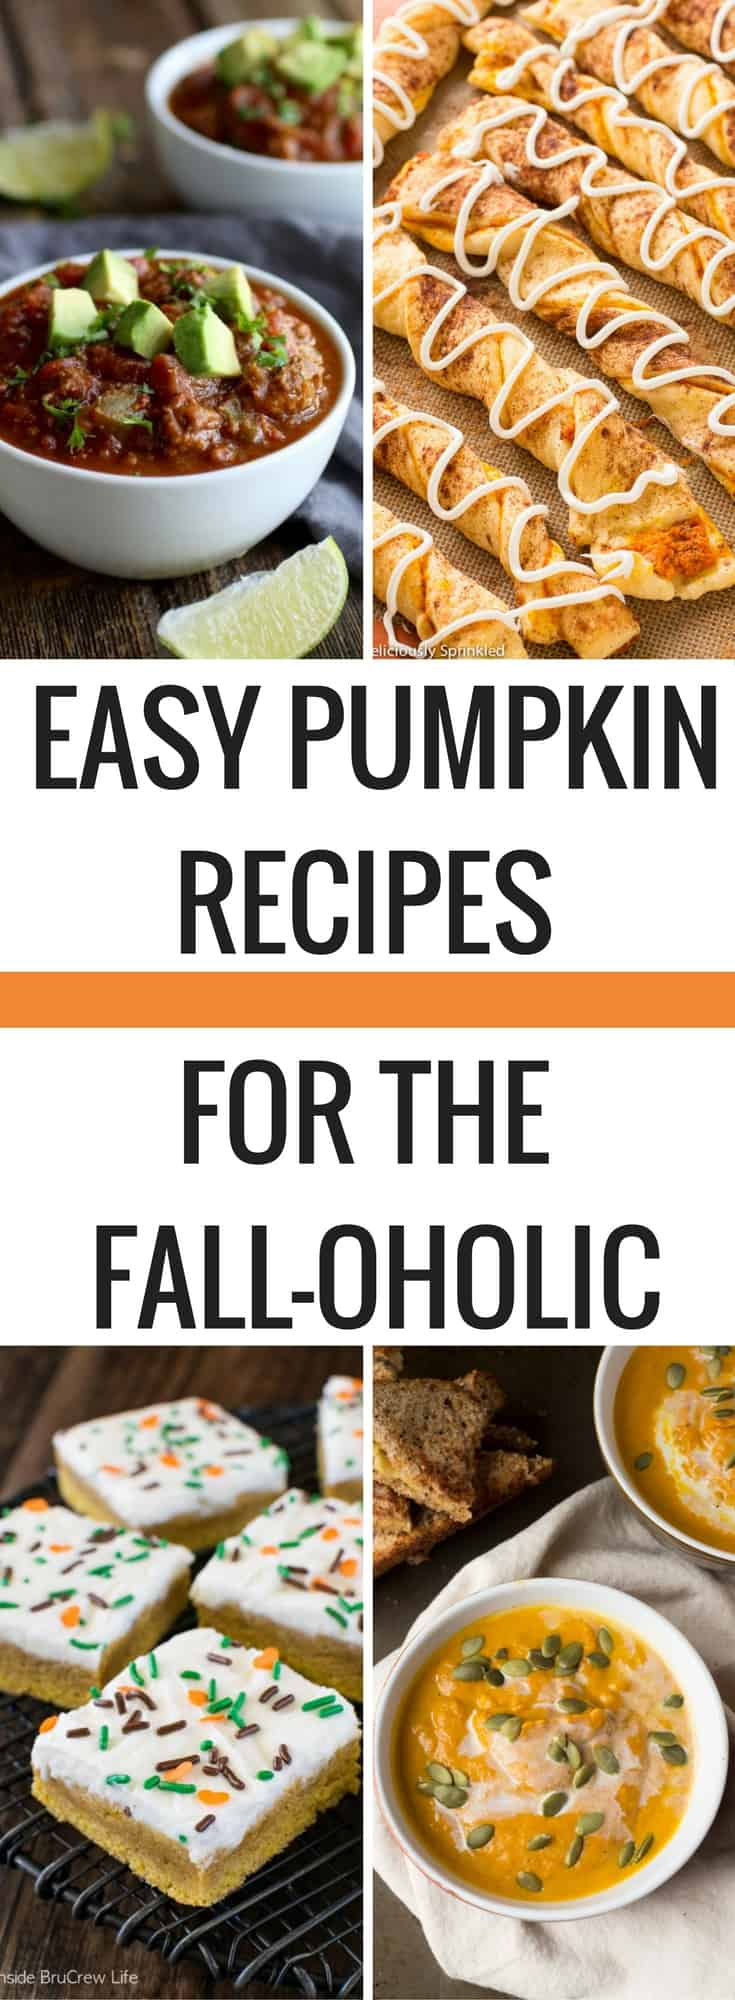 If pumpkin is not on your shopping list this week, get it there now! 10 easy pumpkin recipes that you need to try this fall. This fall recipe round-up is critical to read before your next shopping trip! Pumpkin ingredients are so healthy and an inexpensive to cook with. From slow-cooker to over-night oats, we have your pumpkin craving covered this fall! Easy pumpkin recipes | Pumpkin Spice | Fall Recipes | Slow-Cooker | Budget Meals |